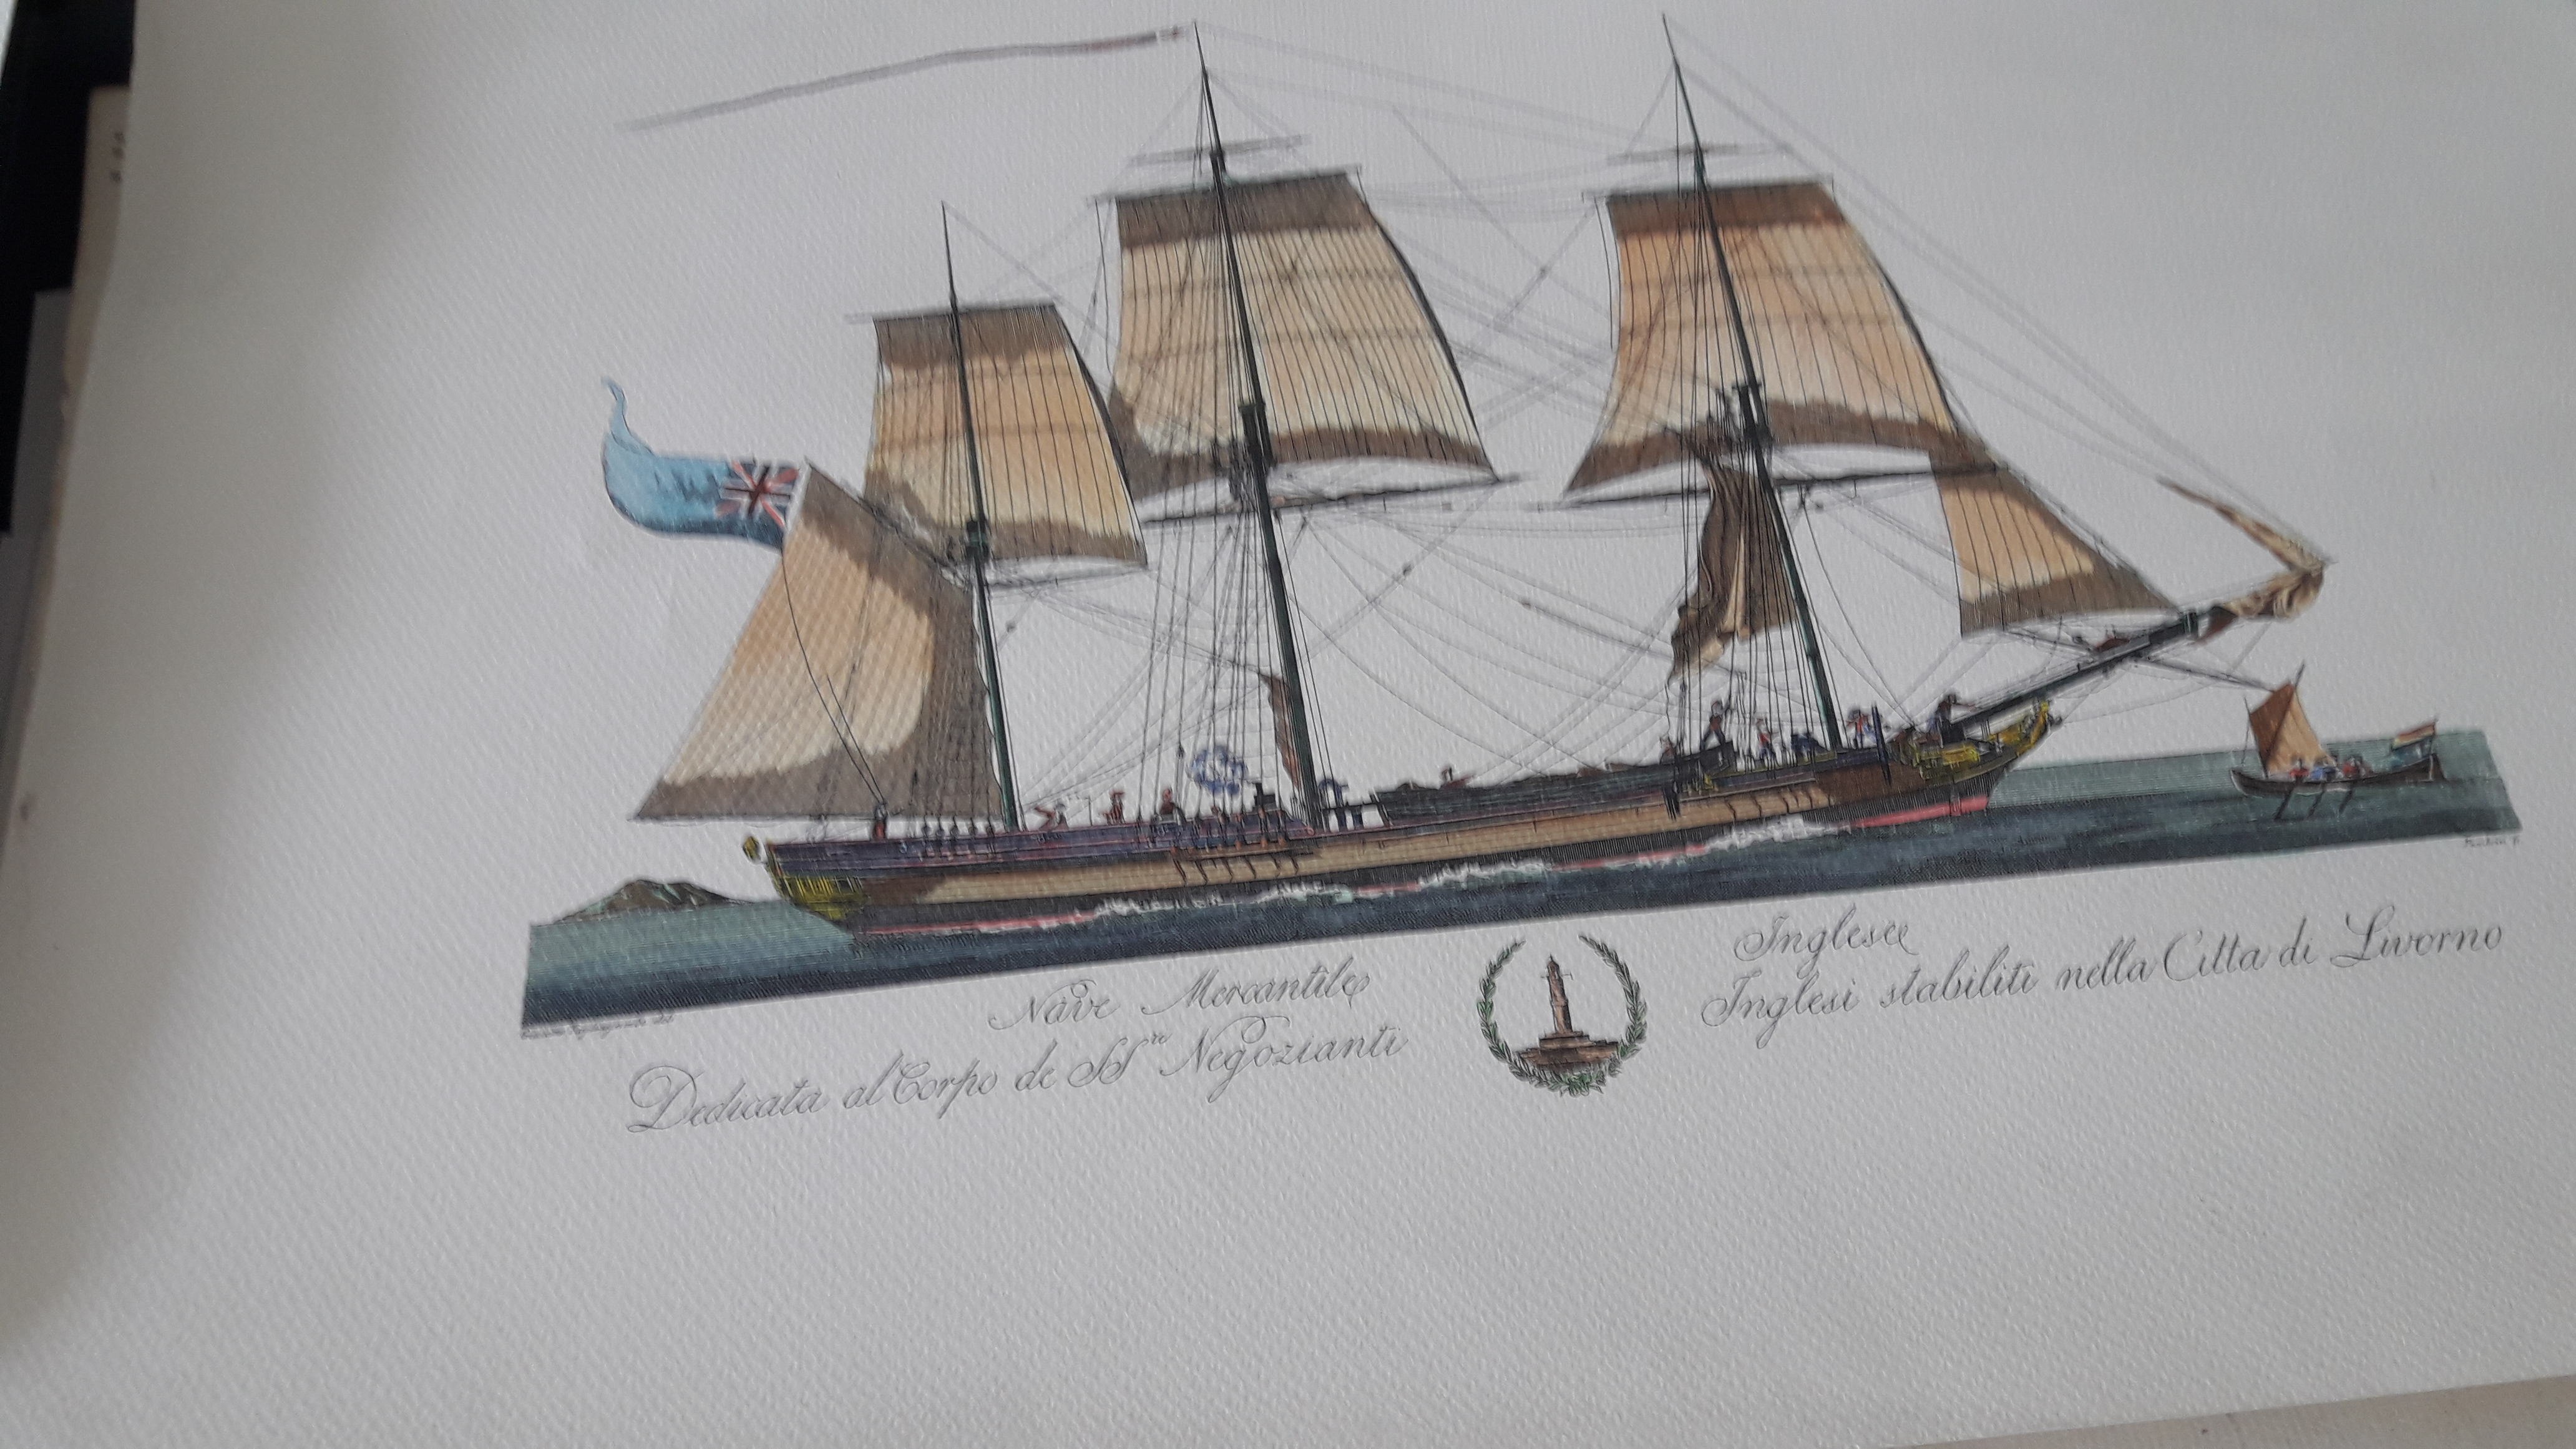 Three reproductions of Italian boat prints